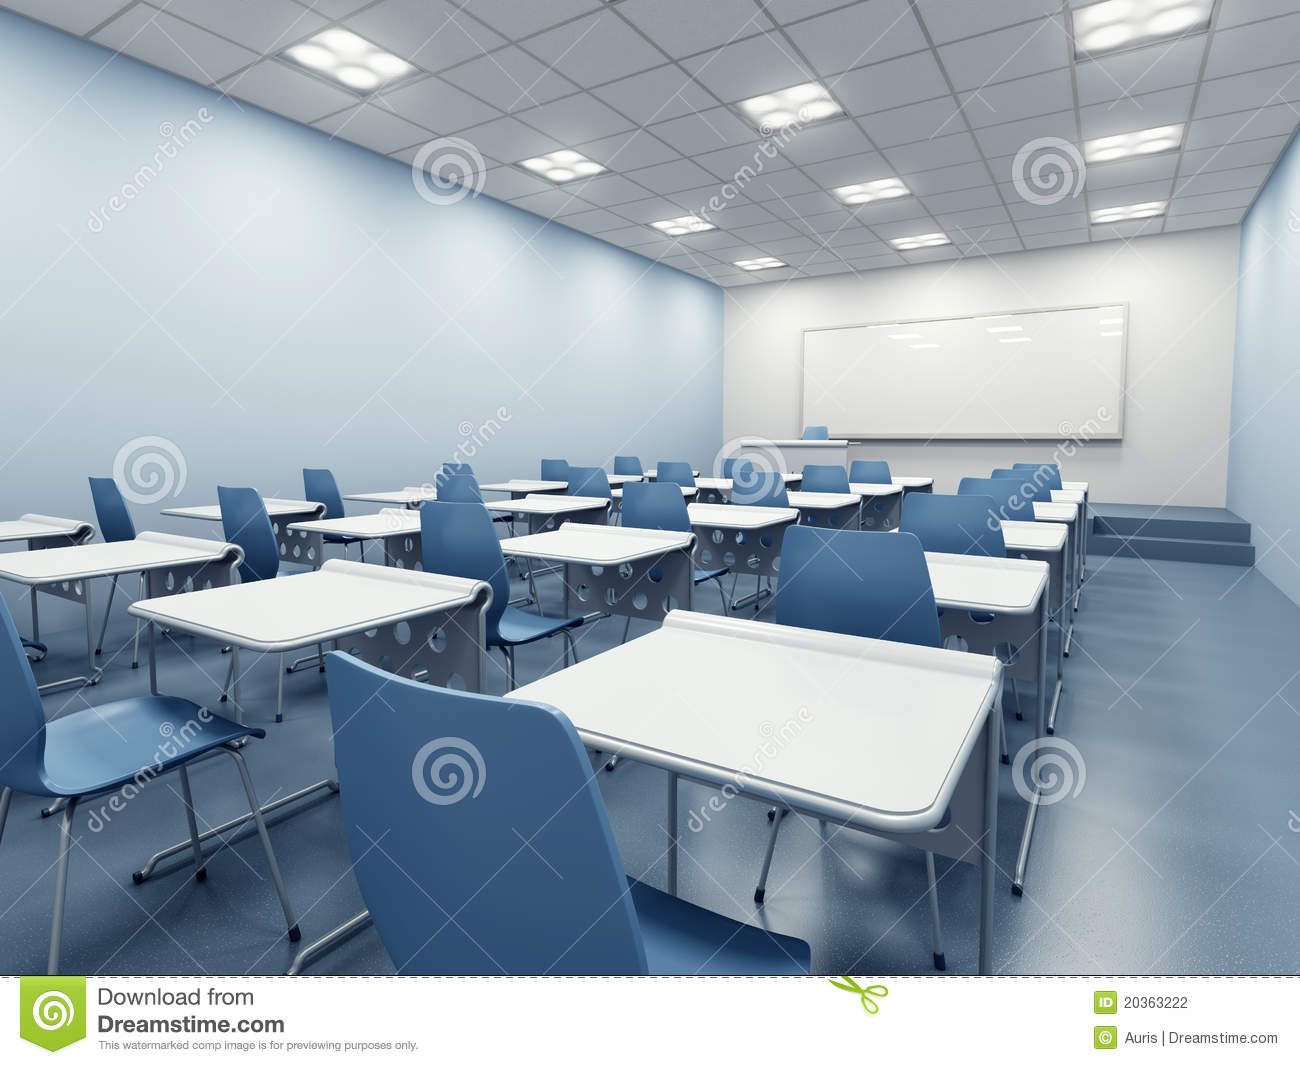 Modern Classroom Images ~ Modern classroom interior stock illustration image of